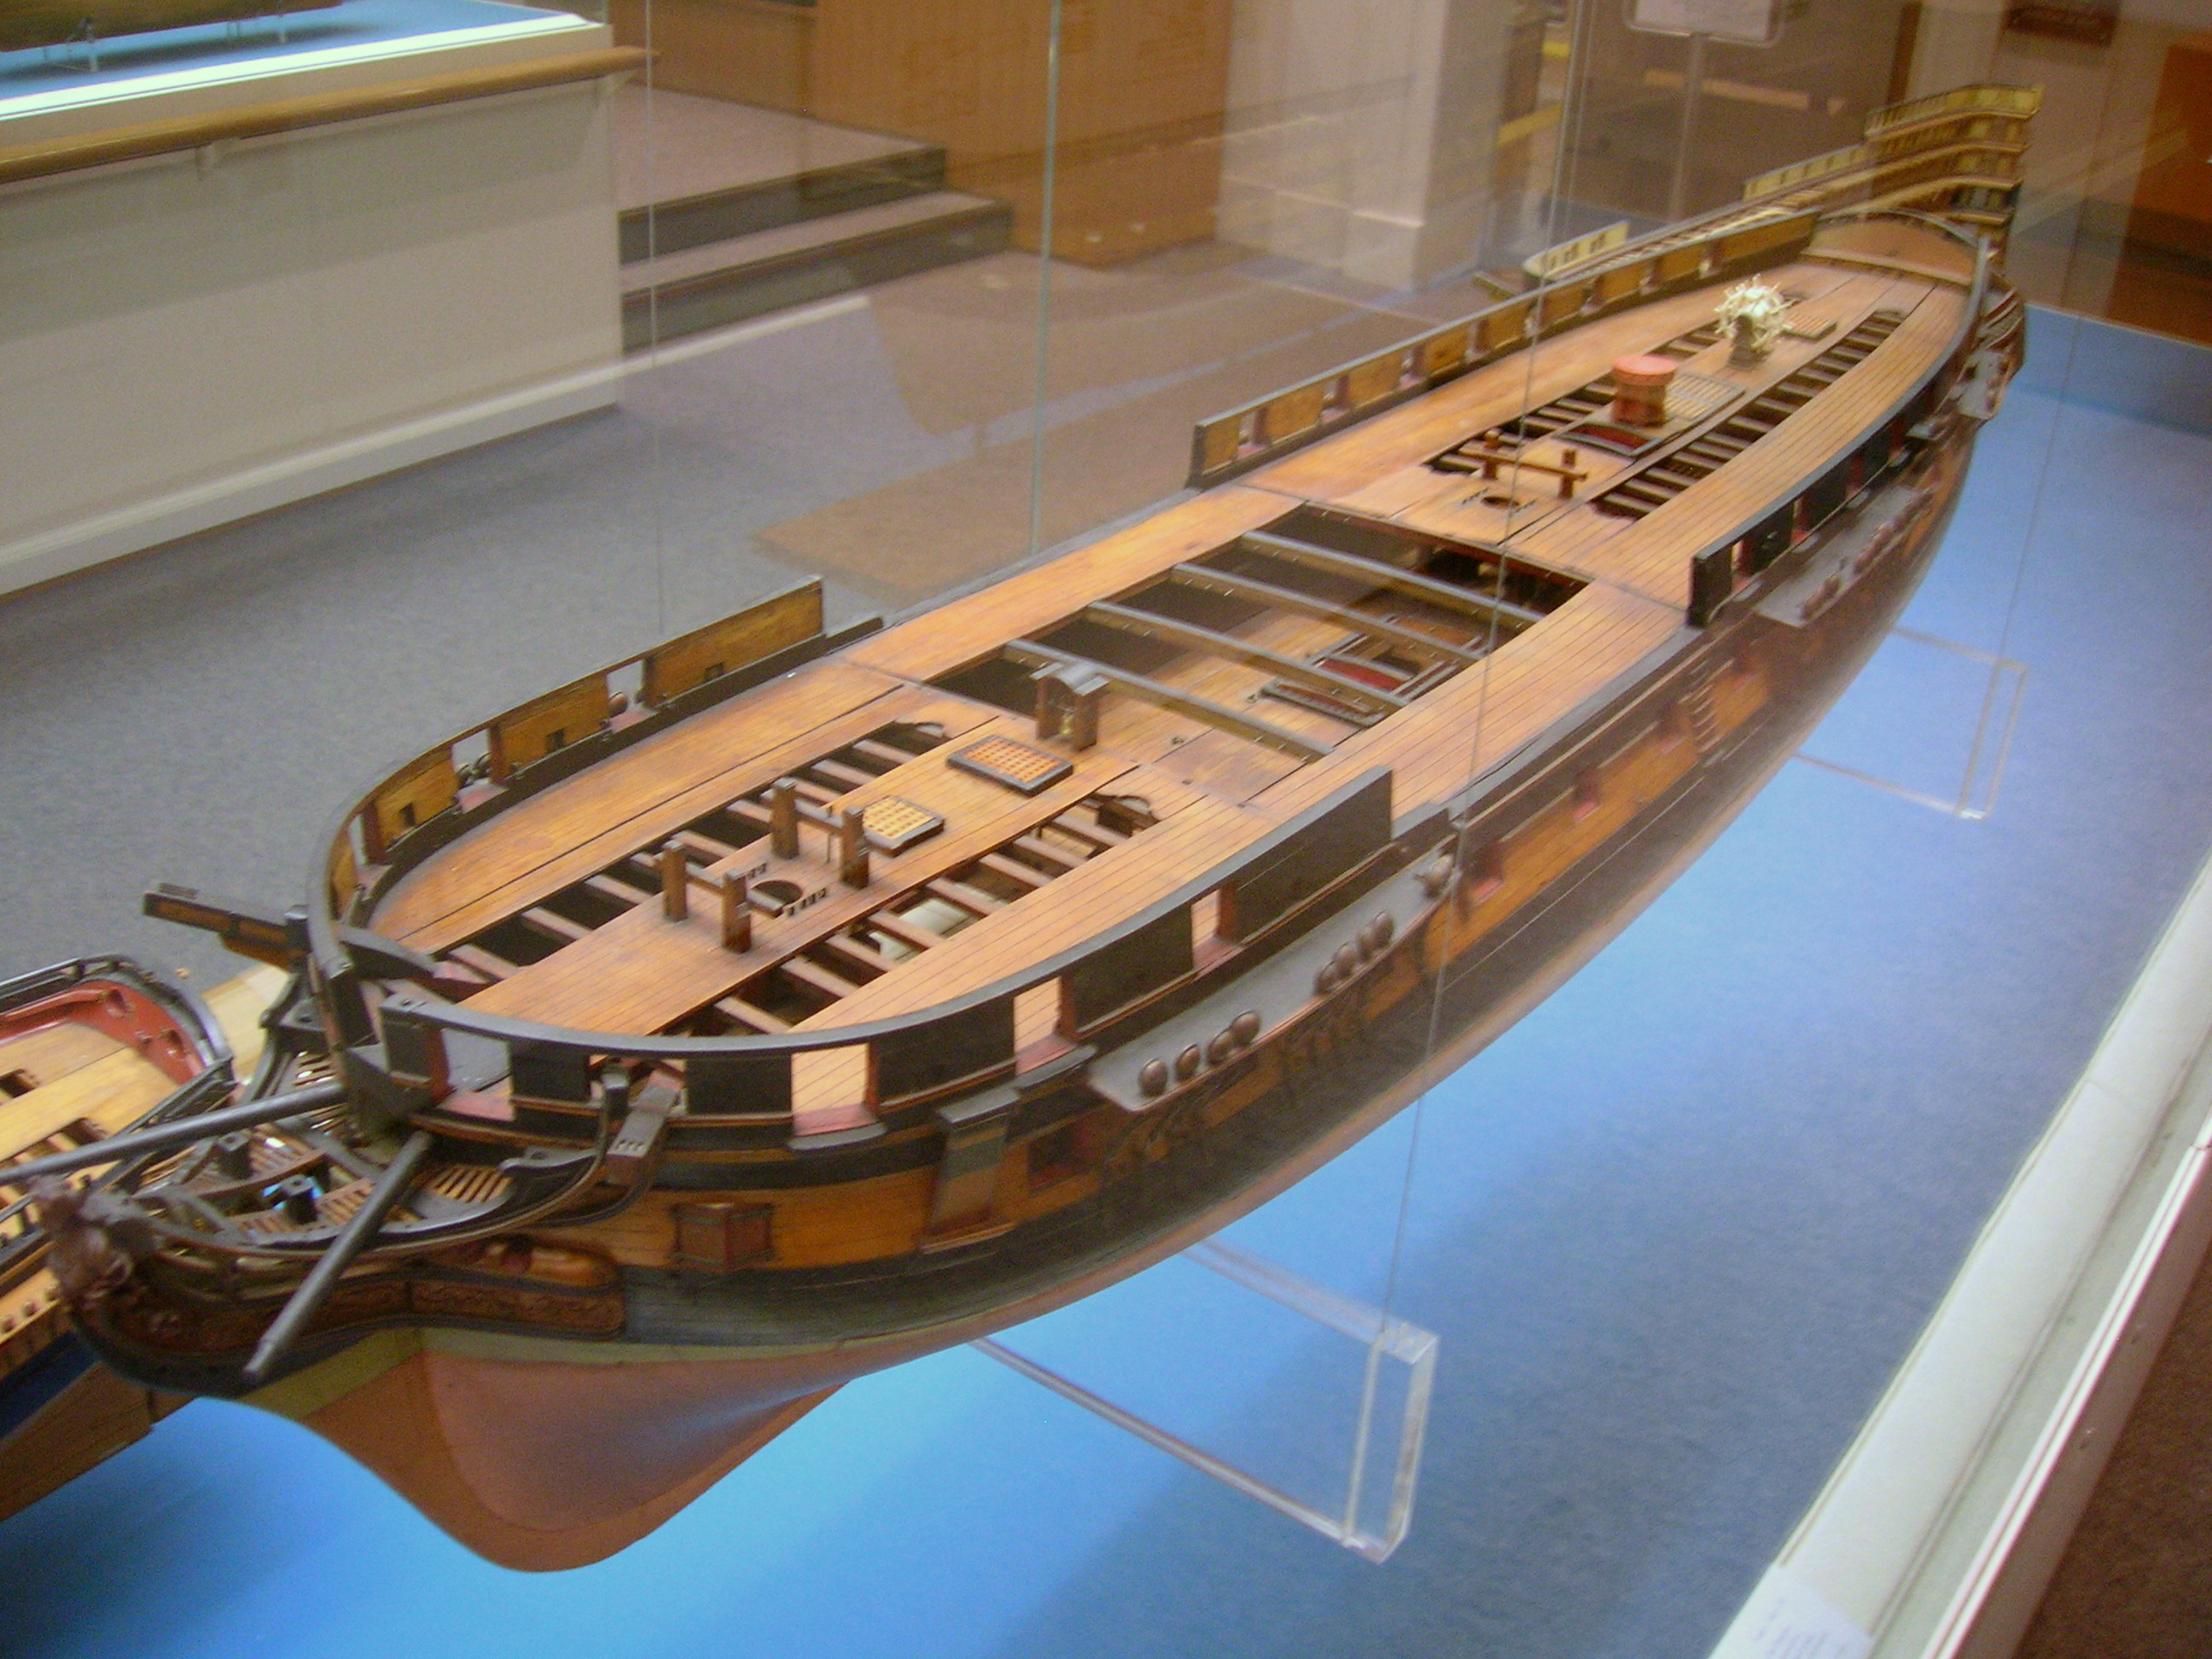 File:40-gun frigate model.jpg - Wikimedia Commons